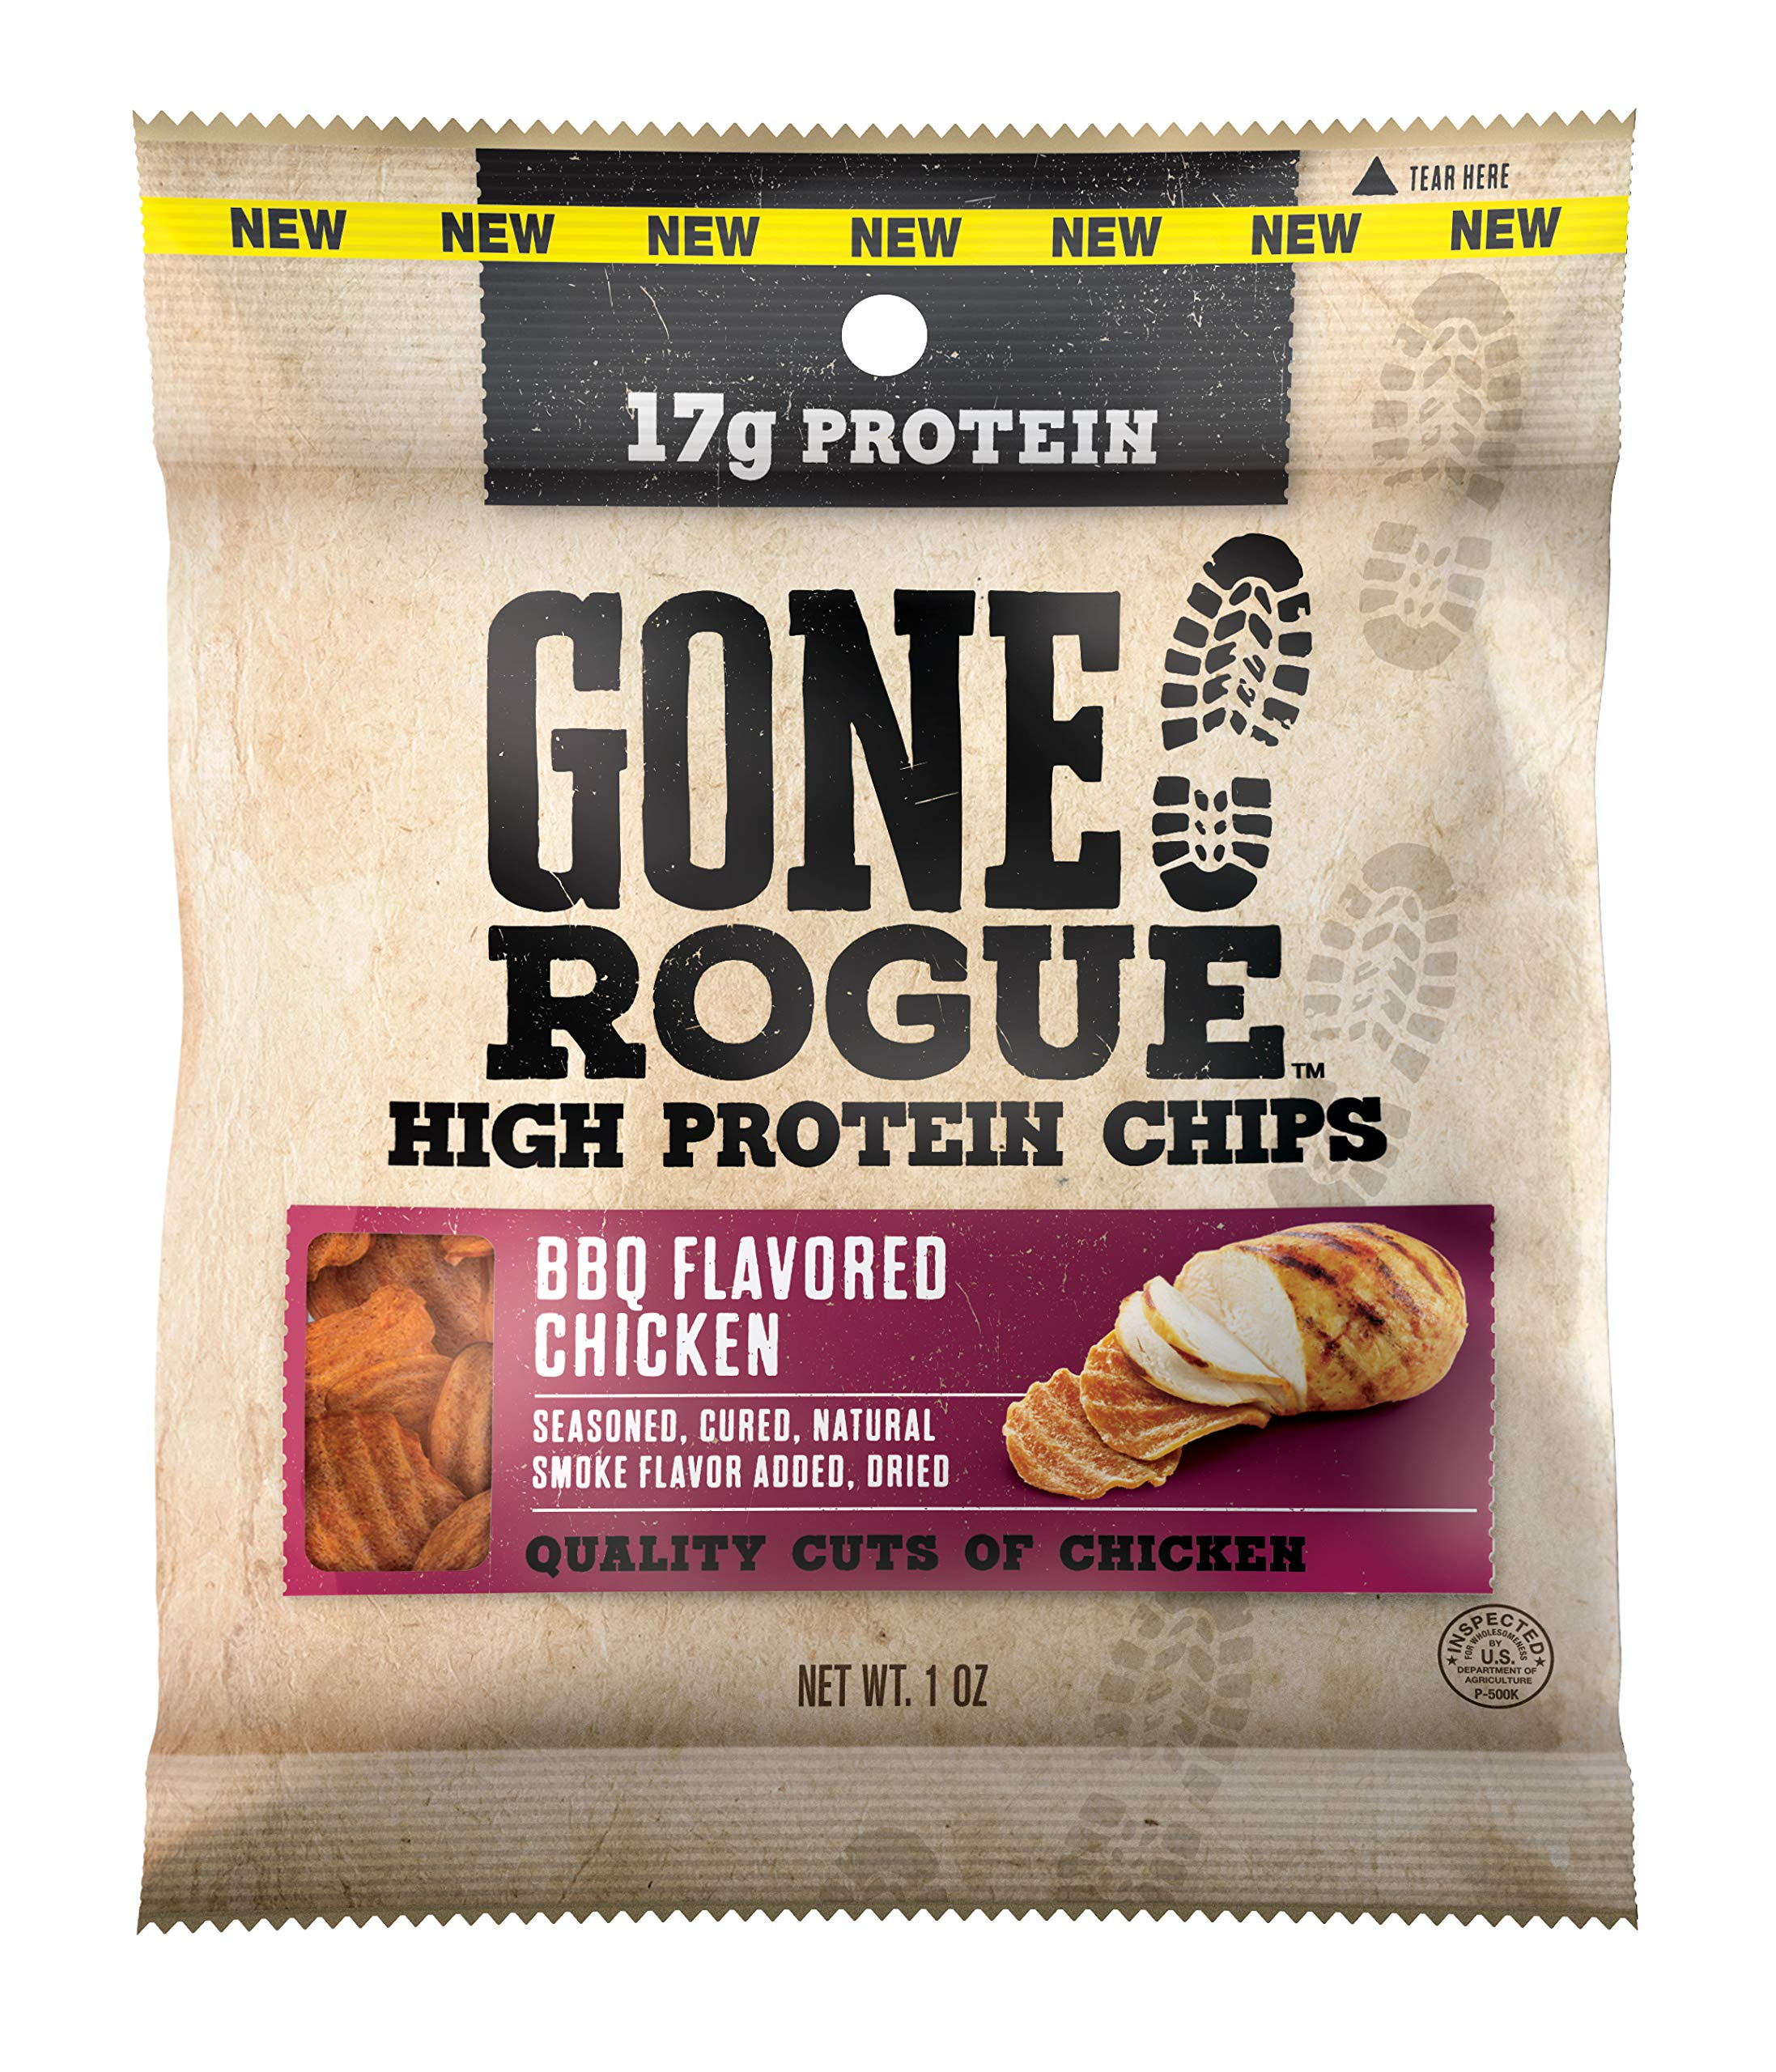 Gone Rogue High Protein BBQ Chicken Chips | Low Carb, Gluten Free Snacks | 8 pack